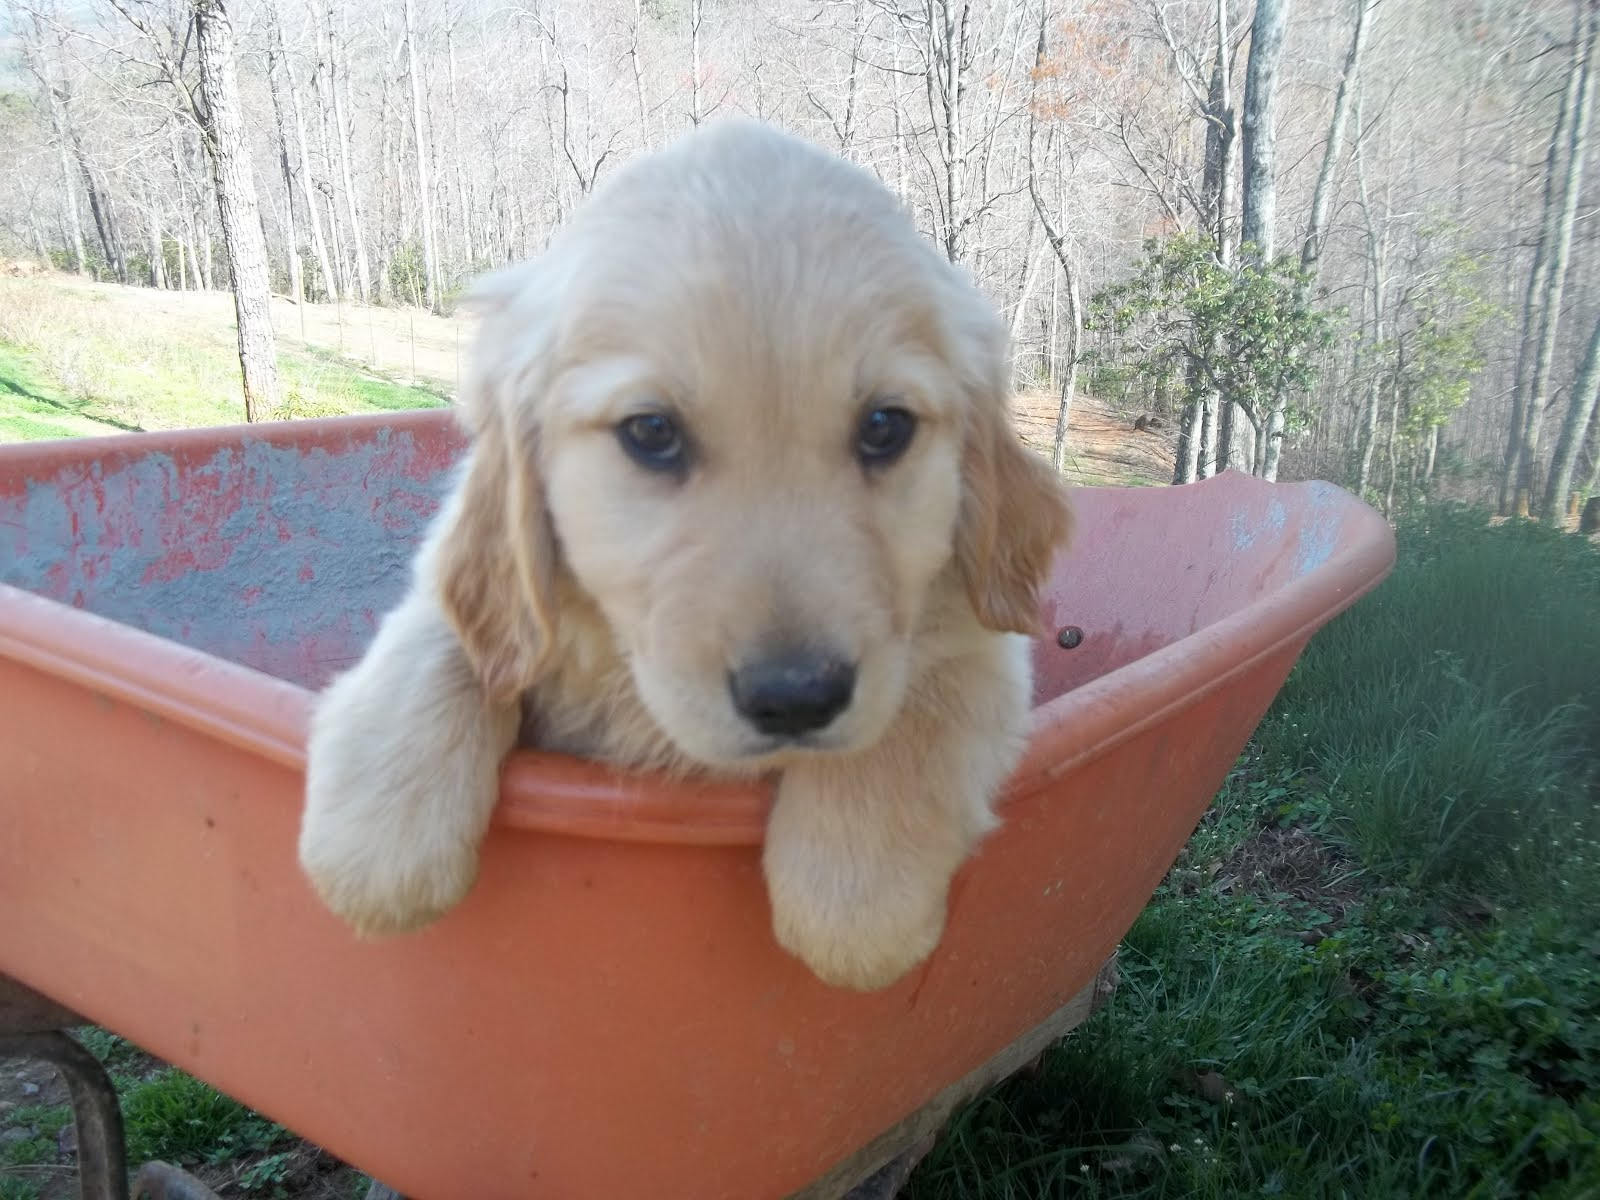 Golden Retriever Puppies FOR SALE: March 2012